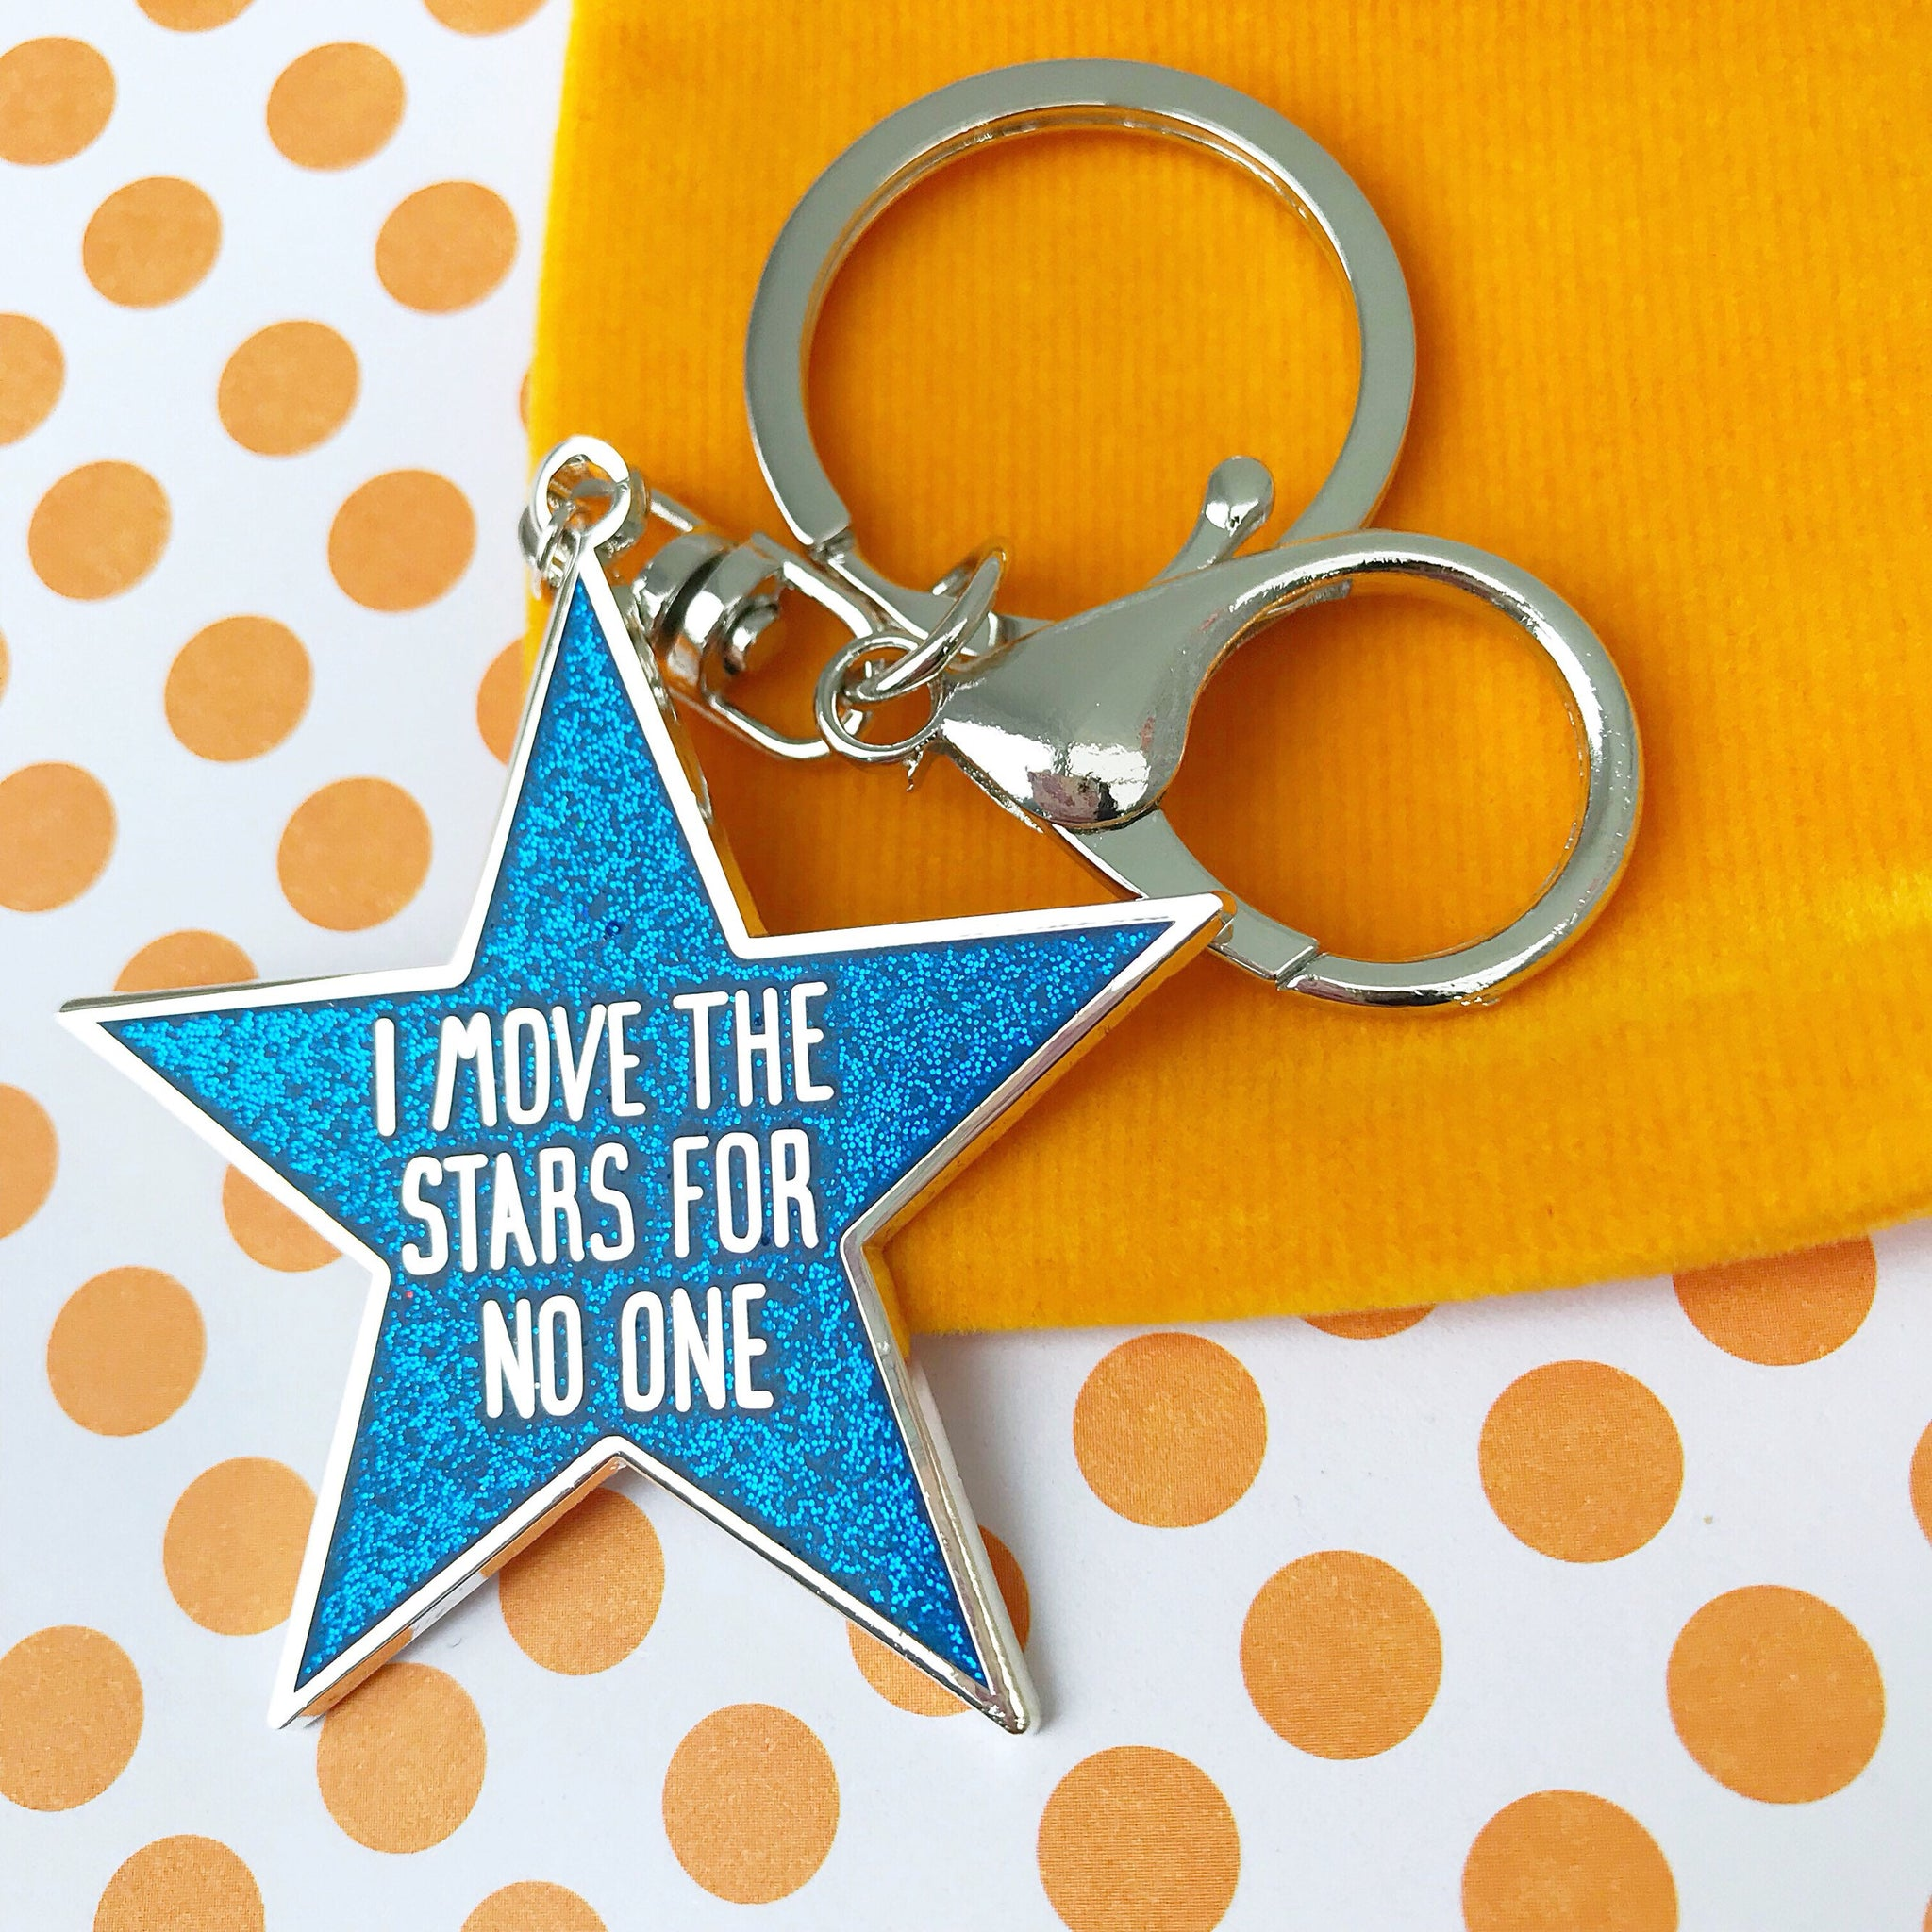 I Move The Stars For No One Enamel Bag Charm (Blue)